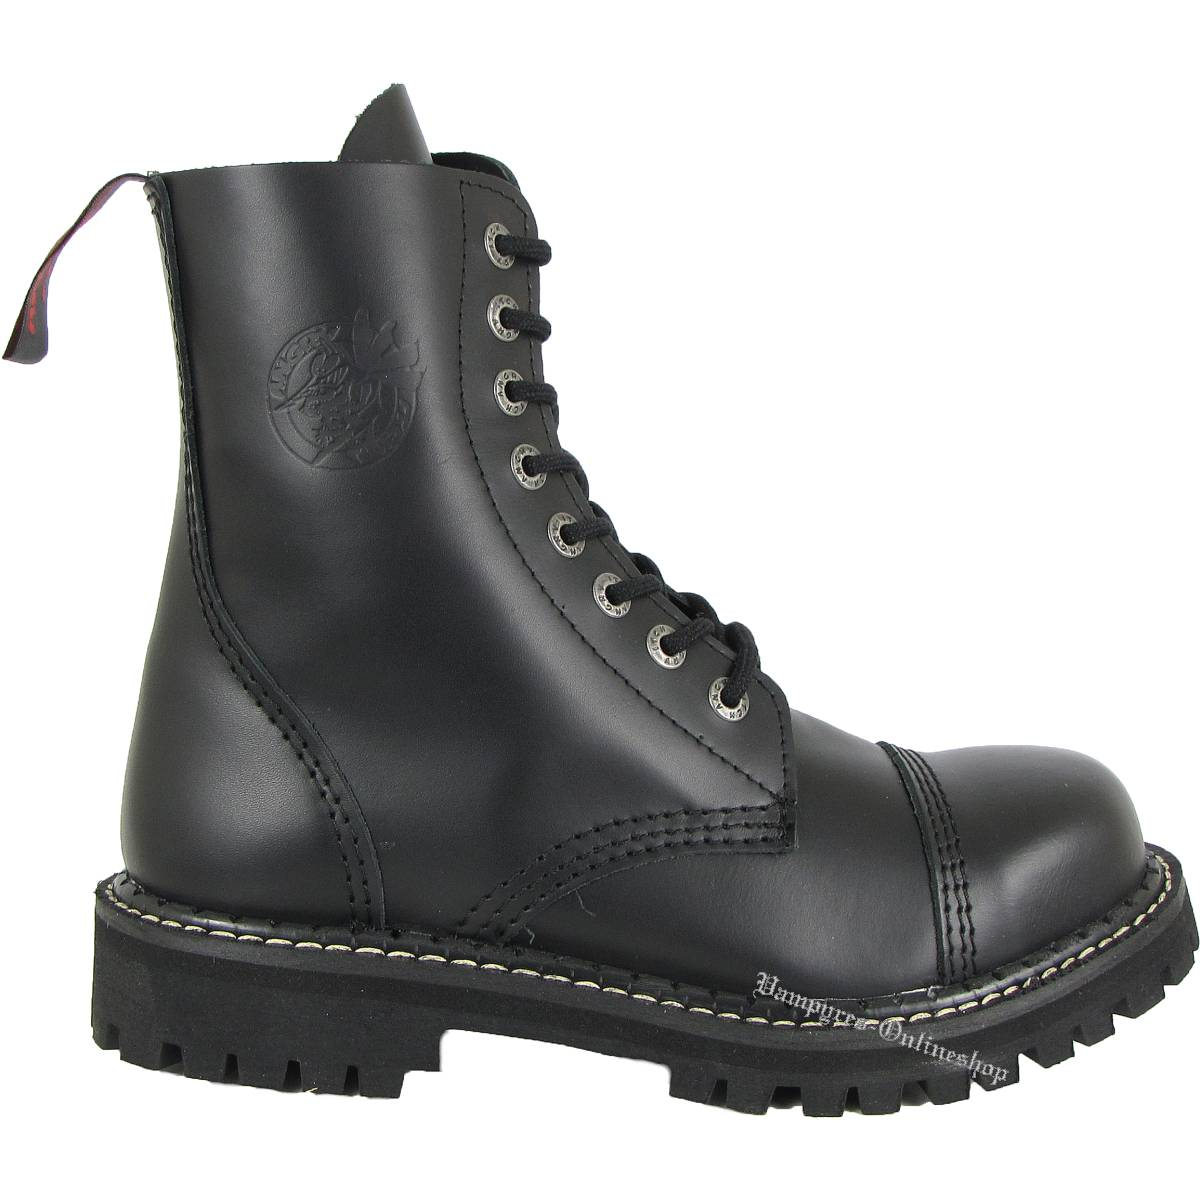 Angry Itch 10 Loch Schwarz Rangers Leder Stiefel Stahlkappen Boots Schuhe